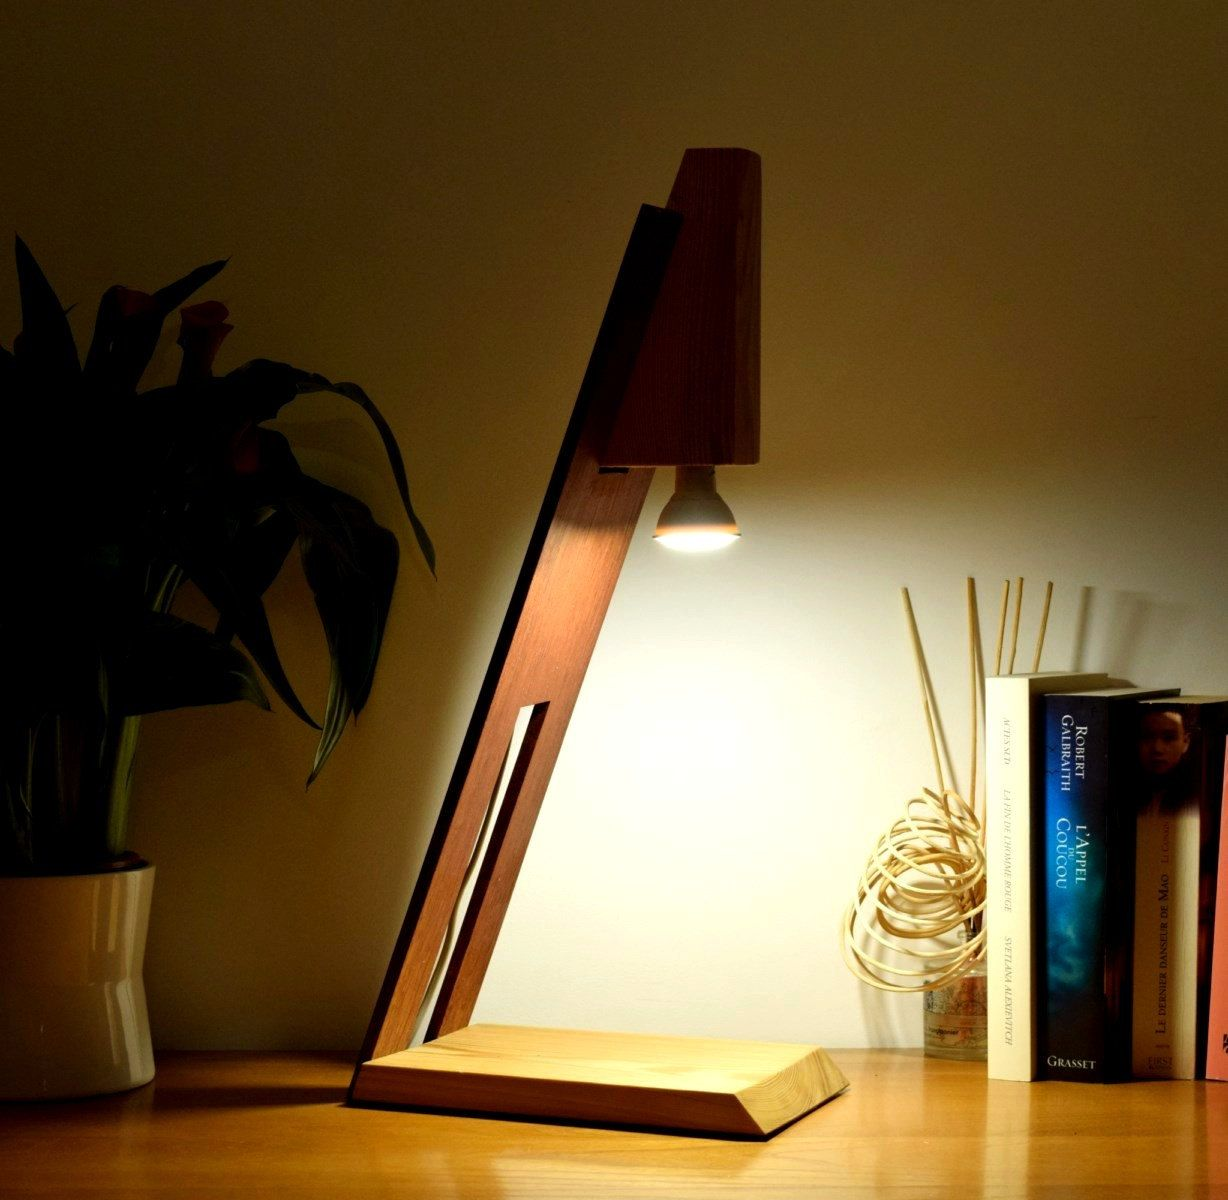 Lampe En Sipo Et Meleze Eclairage Led 5 Watts Amaro Lamp Led Lights Wood Light